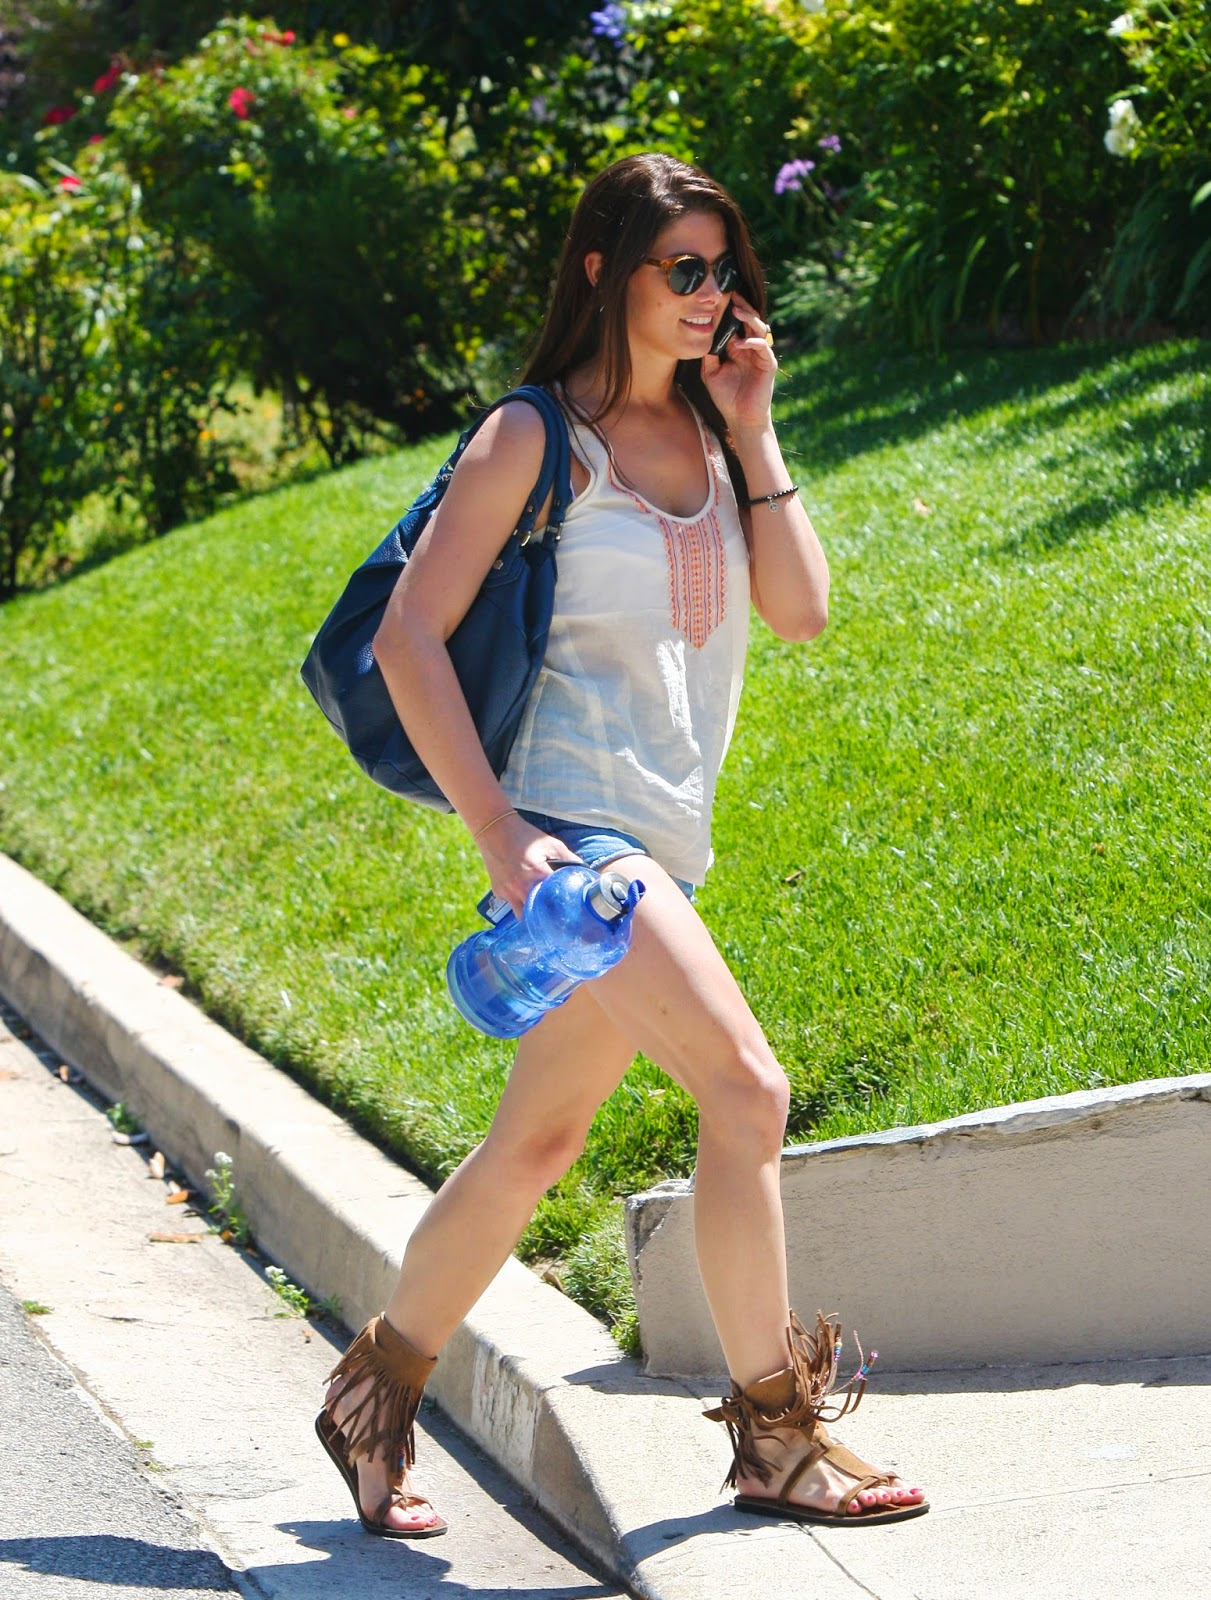 Her Calves Muscle Legs: Ashley Greene shows off muscular ...